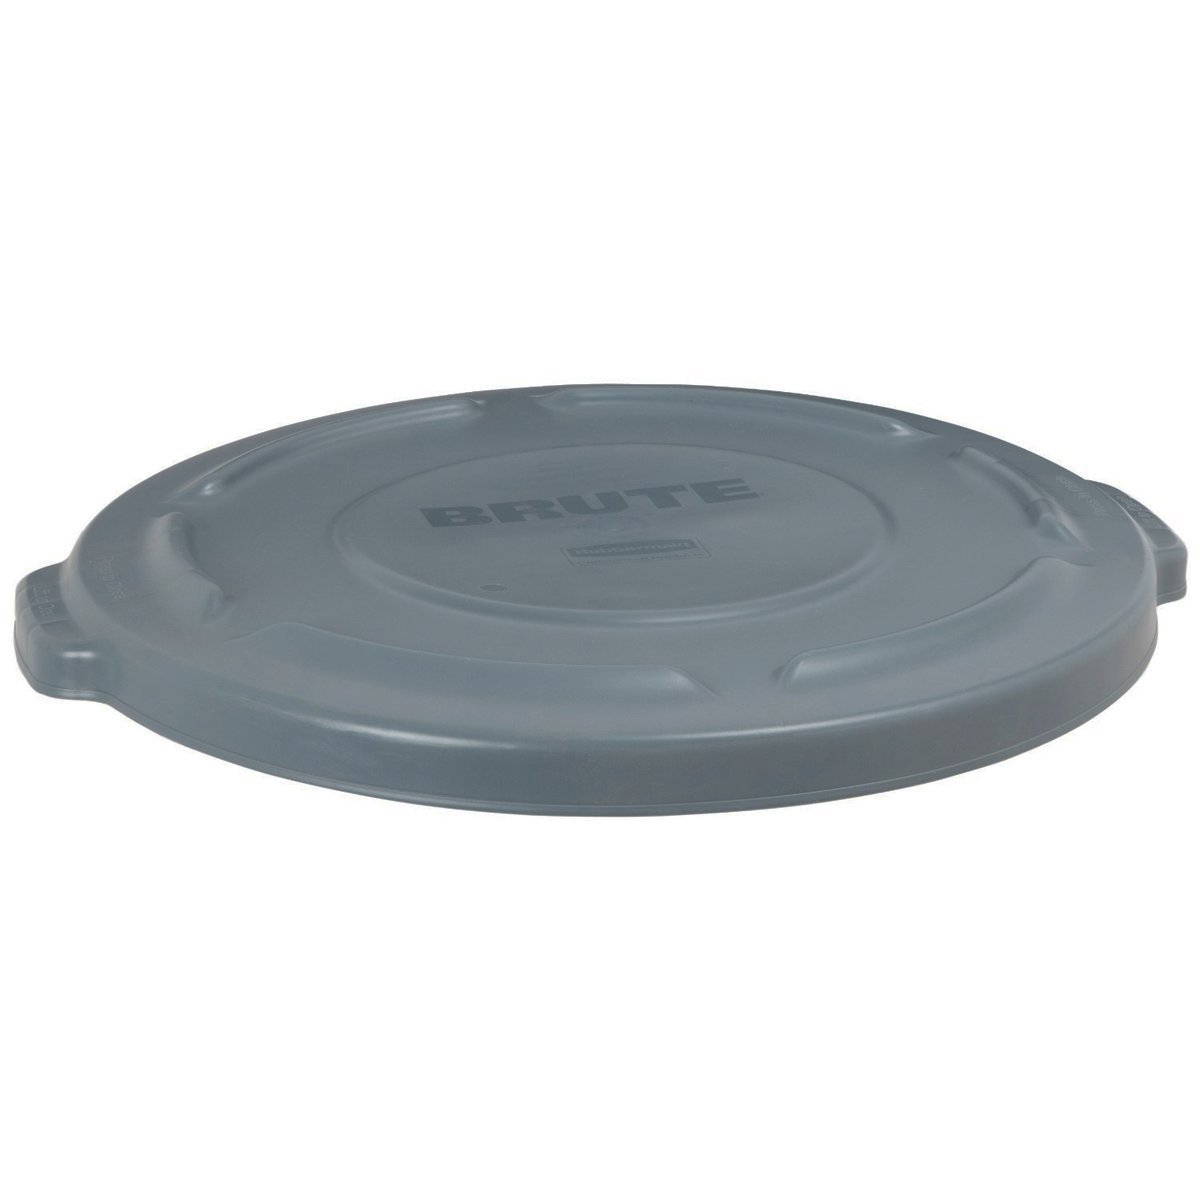 Brute 20 Gal. Gray Round Vented Trash Can Lid Case of 6 FG261960GRAY Rubbermaid